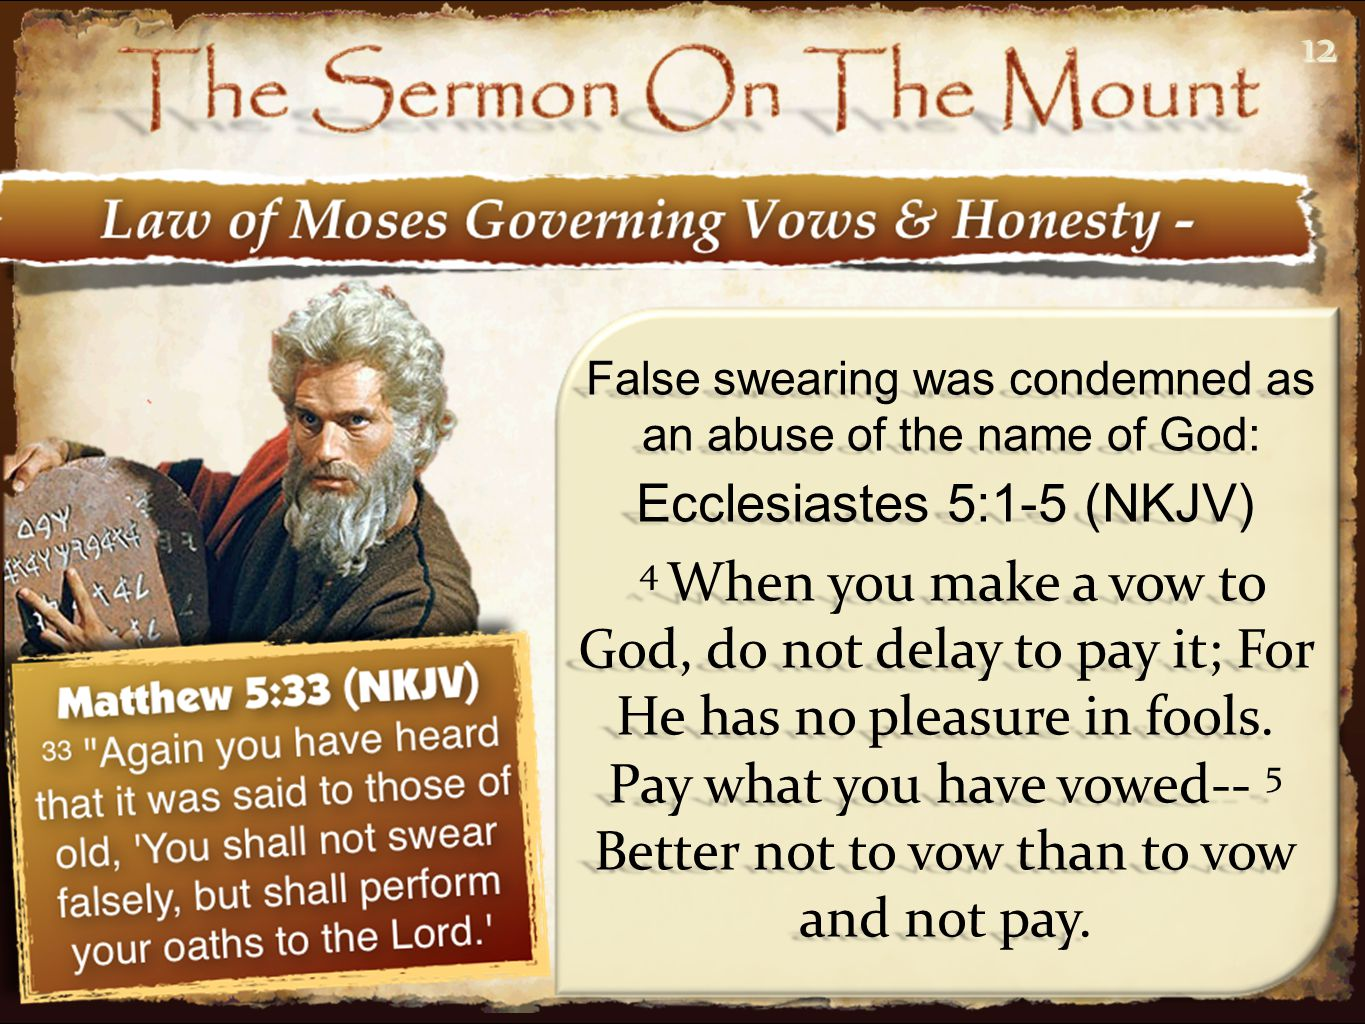 1212 Ecclesiastes 5:1-5 (NKJV) 4 When you make a vow to God, do not delay to pay it; For He has no pleasure in fools. Pay what you have vowed-- 5 Bett